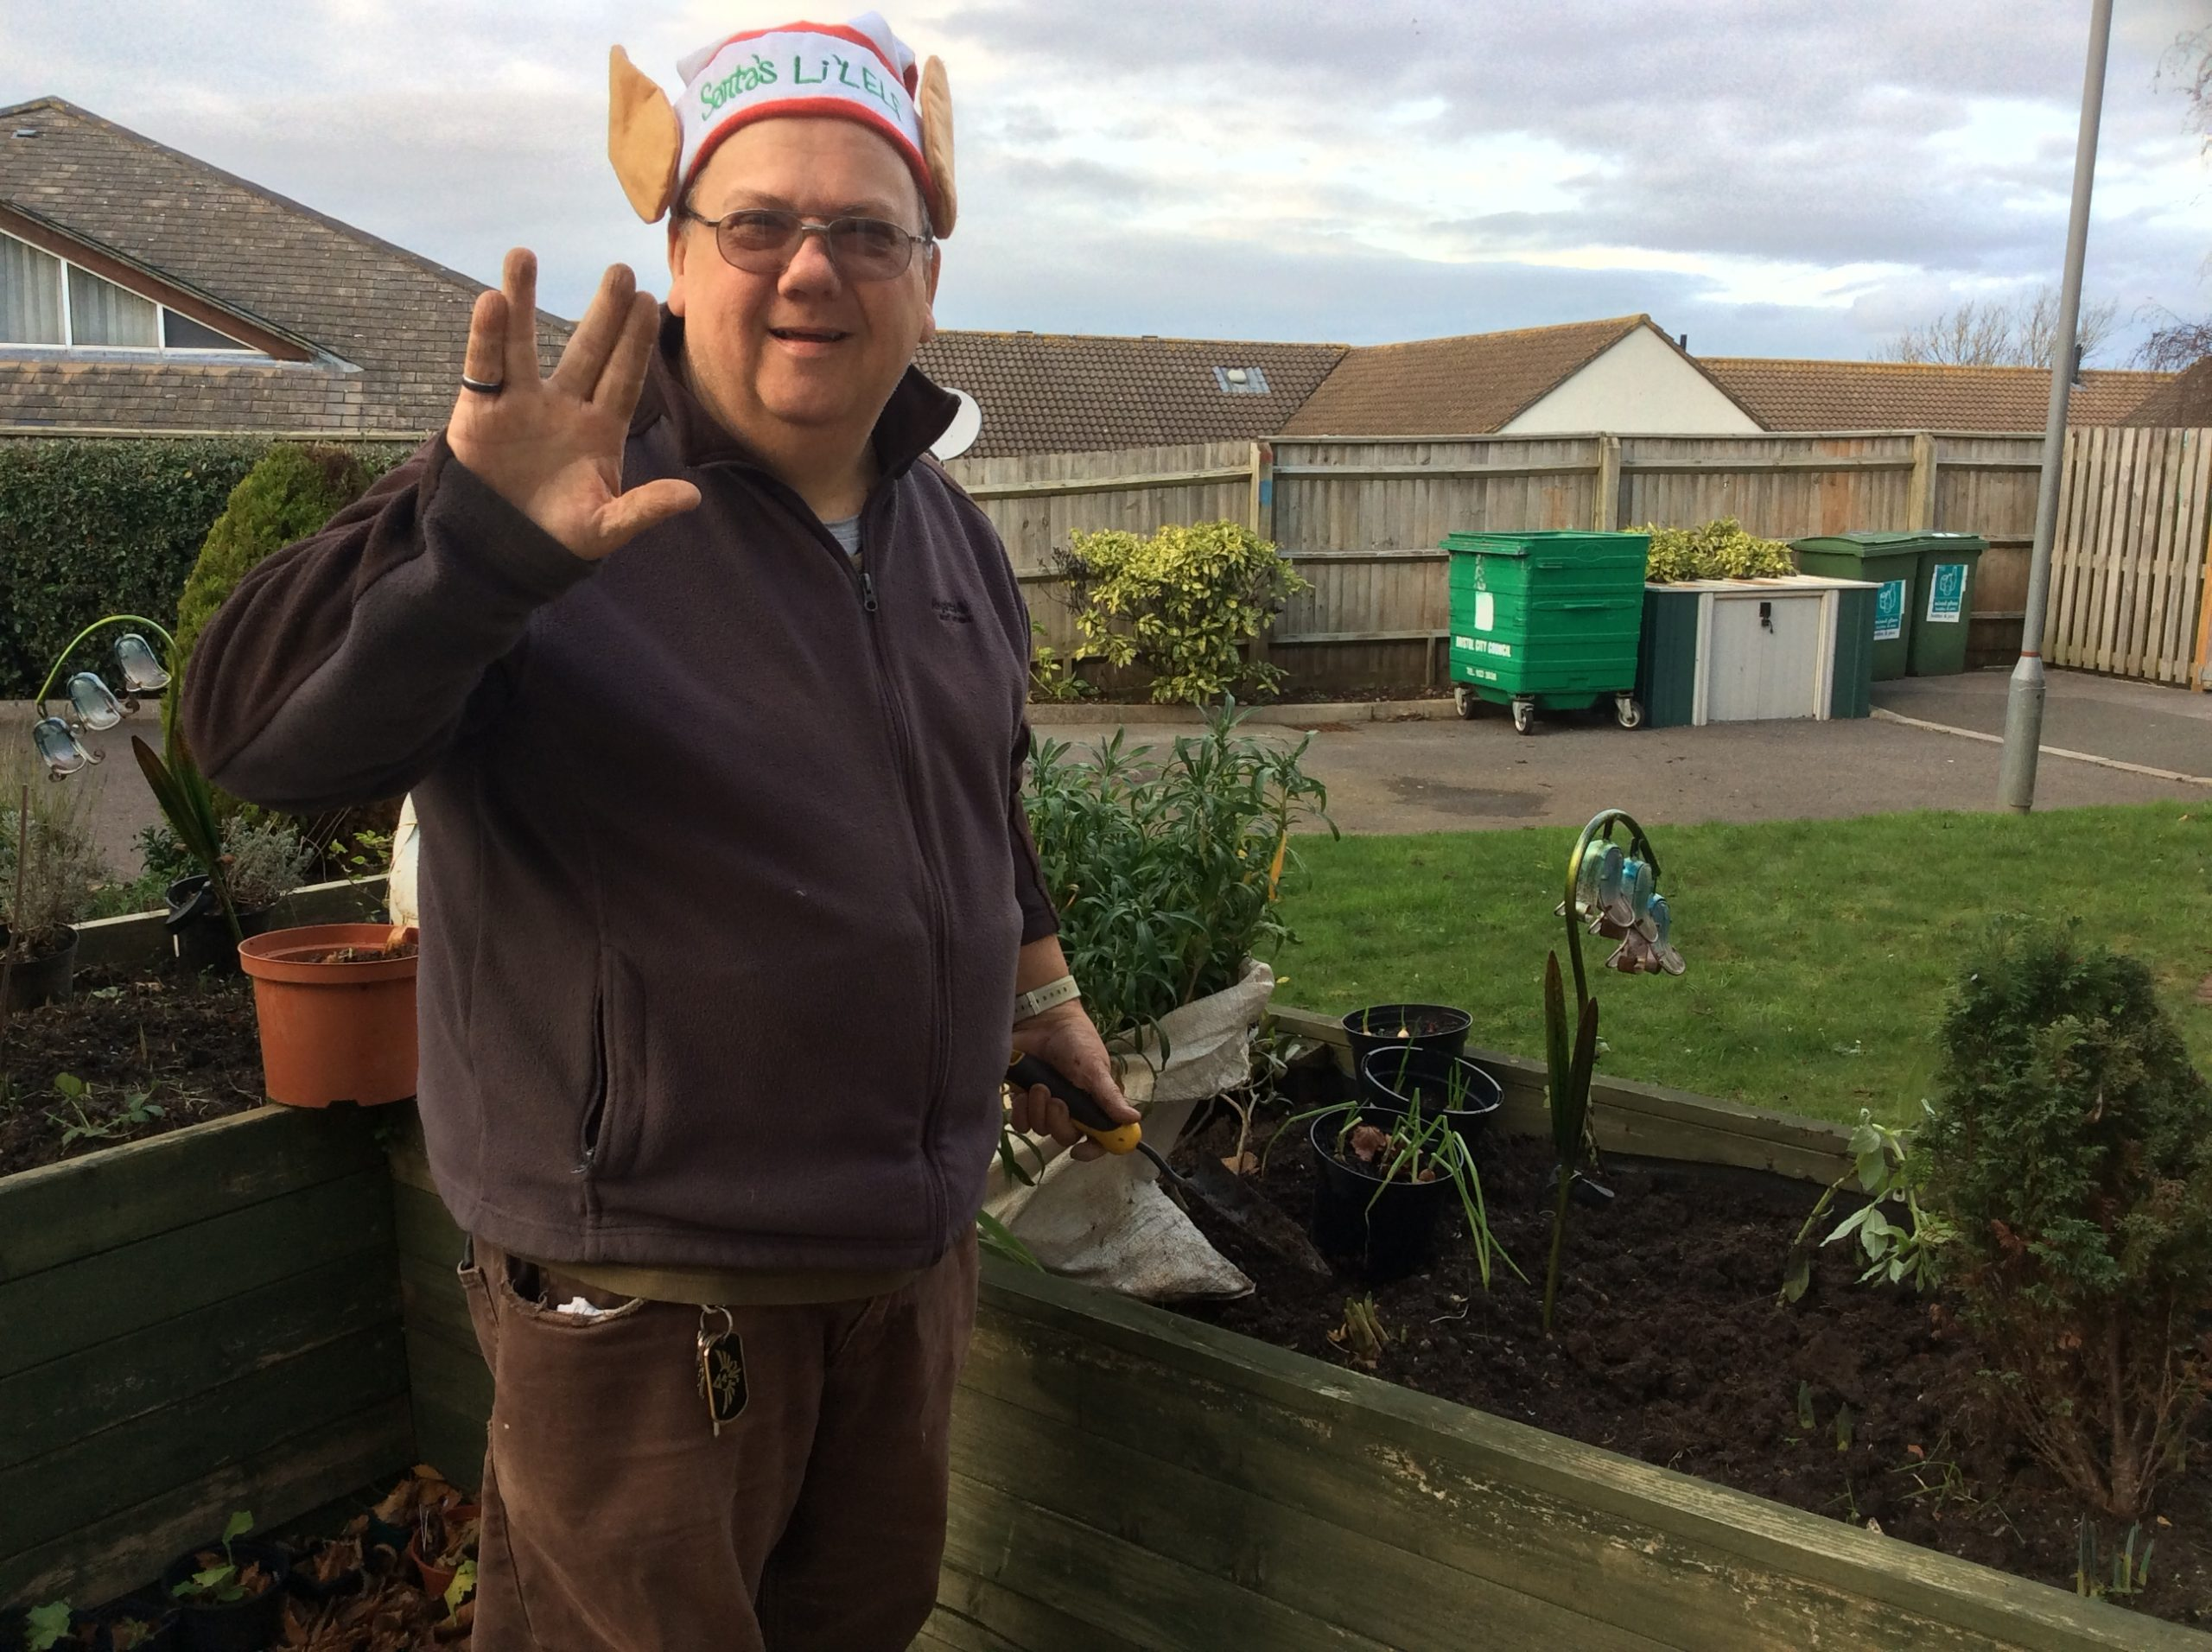 Gardening sessions return to the community